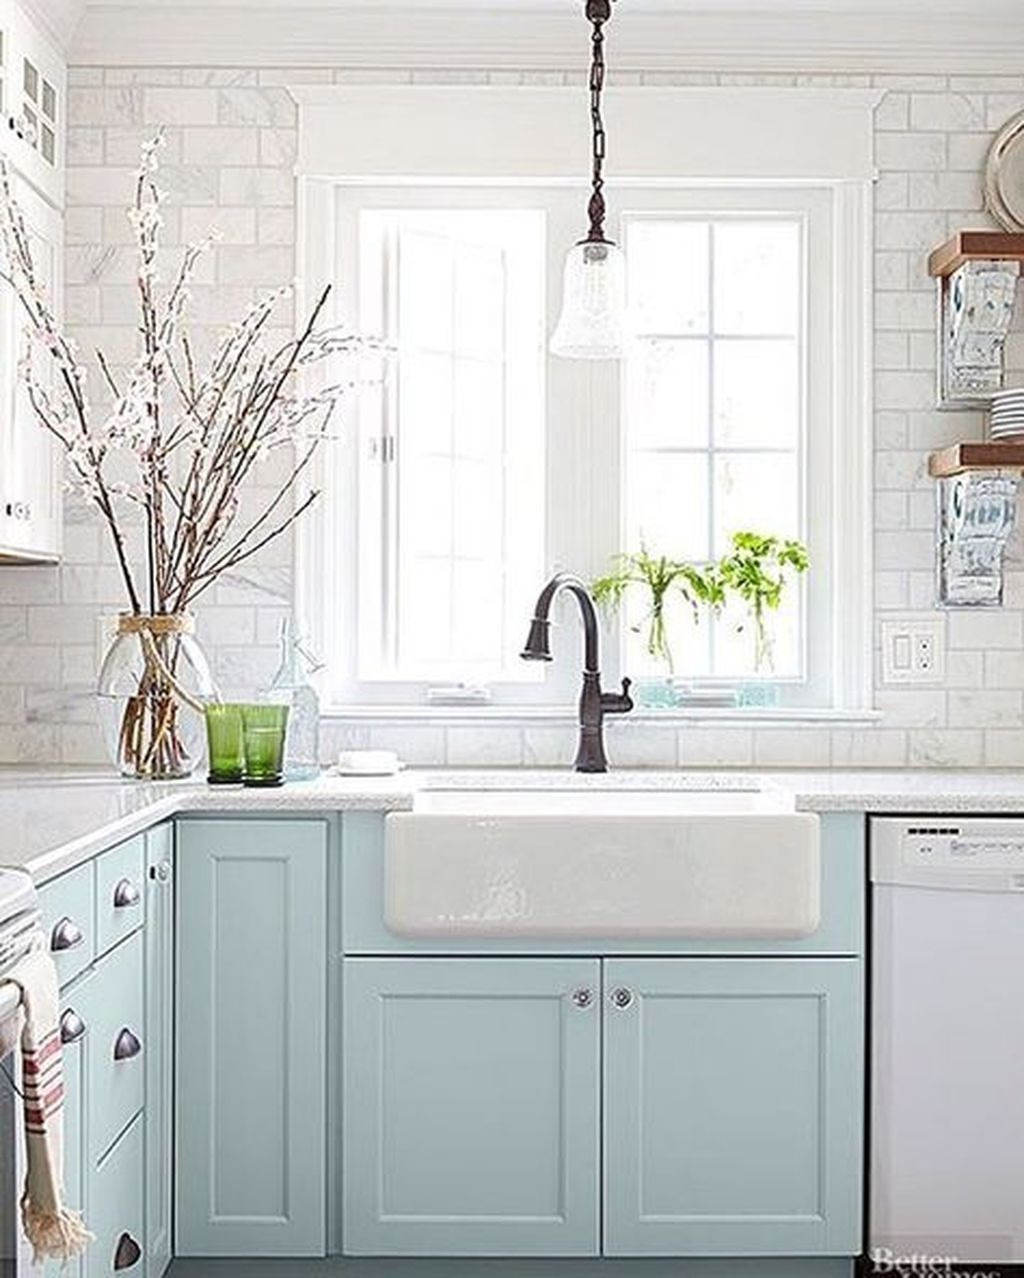 Cool French Country Kitchen Ideas On A Budget 42 | Home Stuff ...